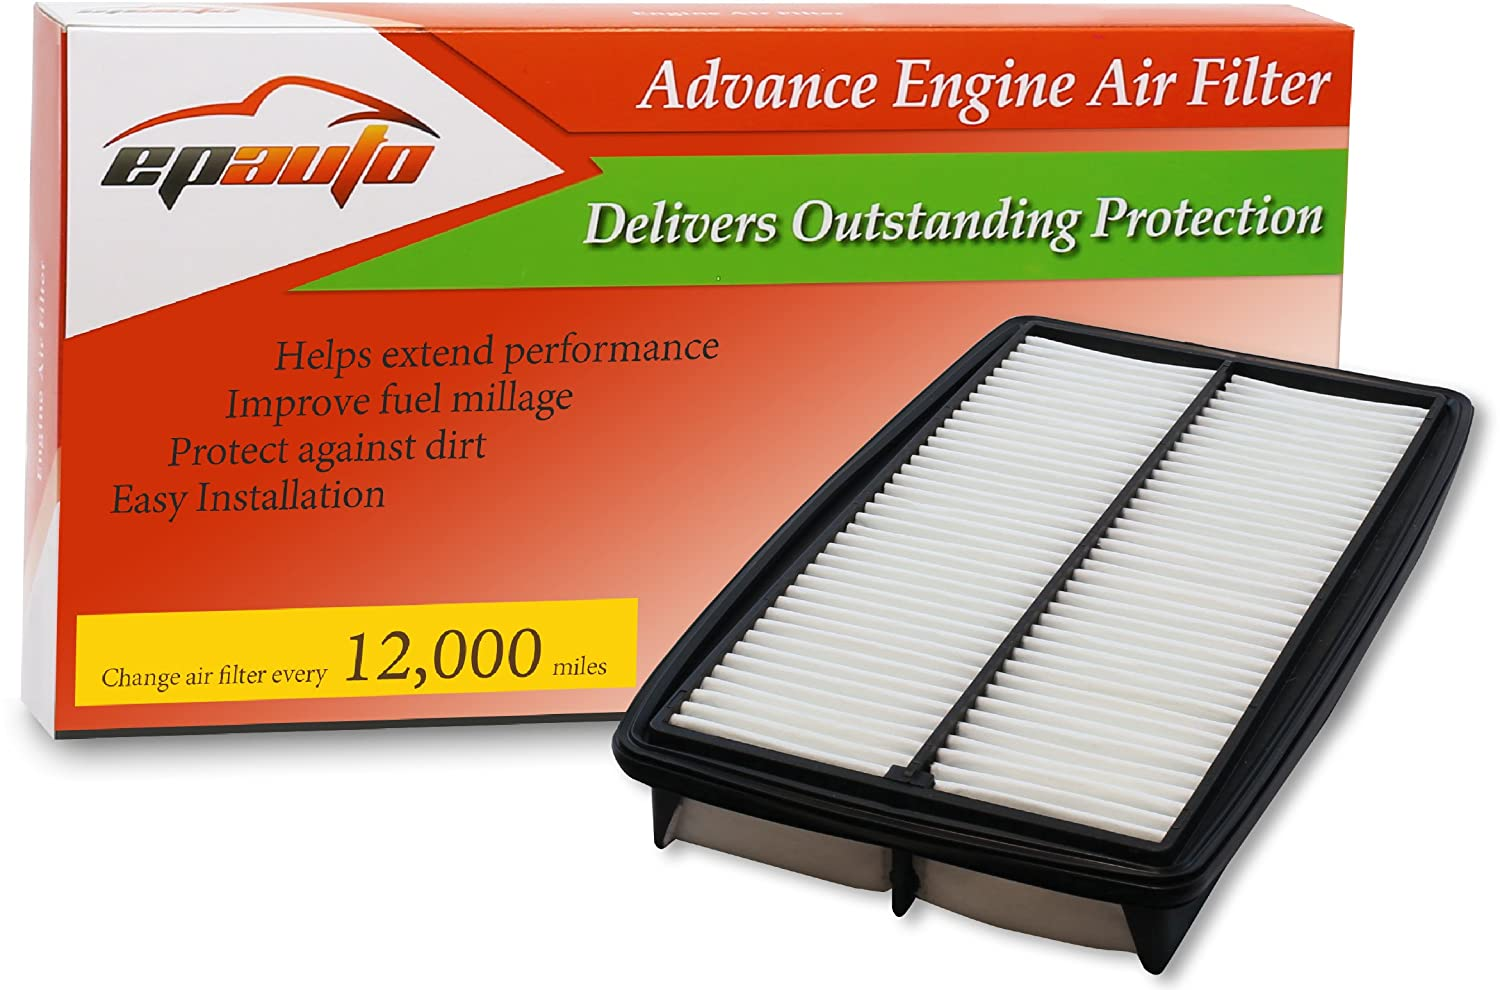 Engine Air Filter And Cabin Air Filter Recommendations Acura MDX - Acura mdx air filter